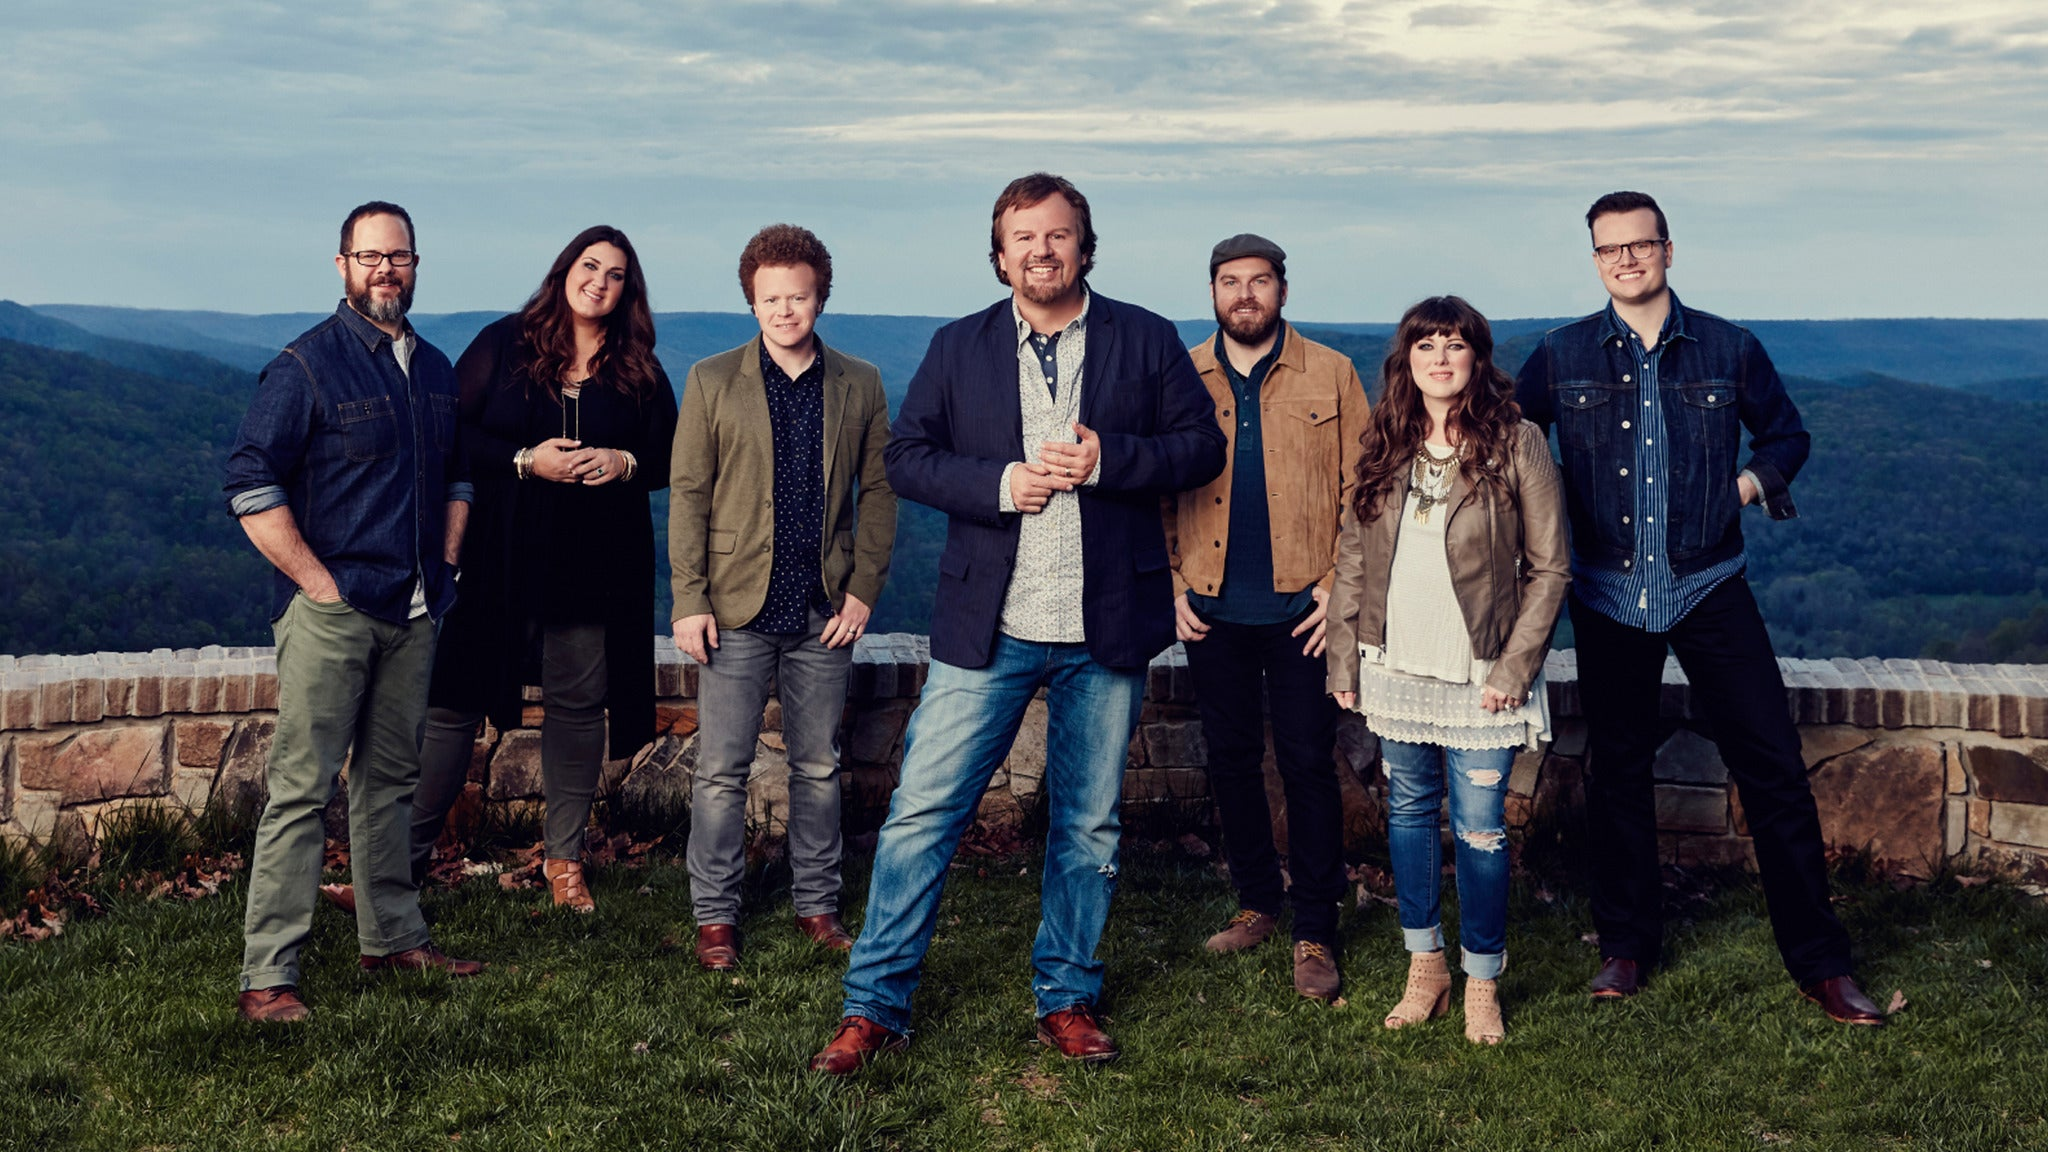 Casting Crowns at Bob Hope Theatre